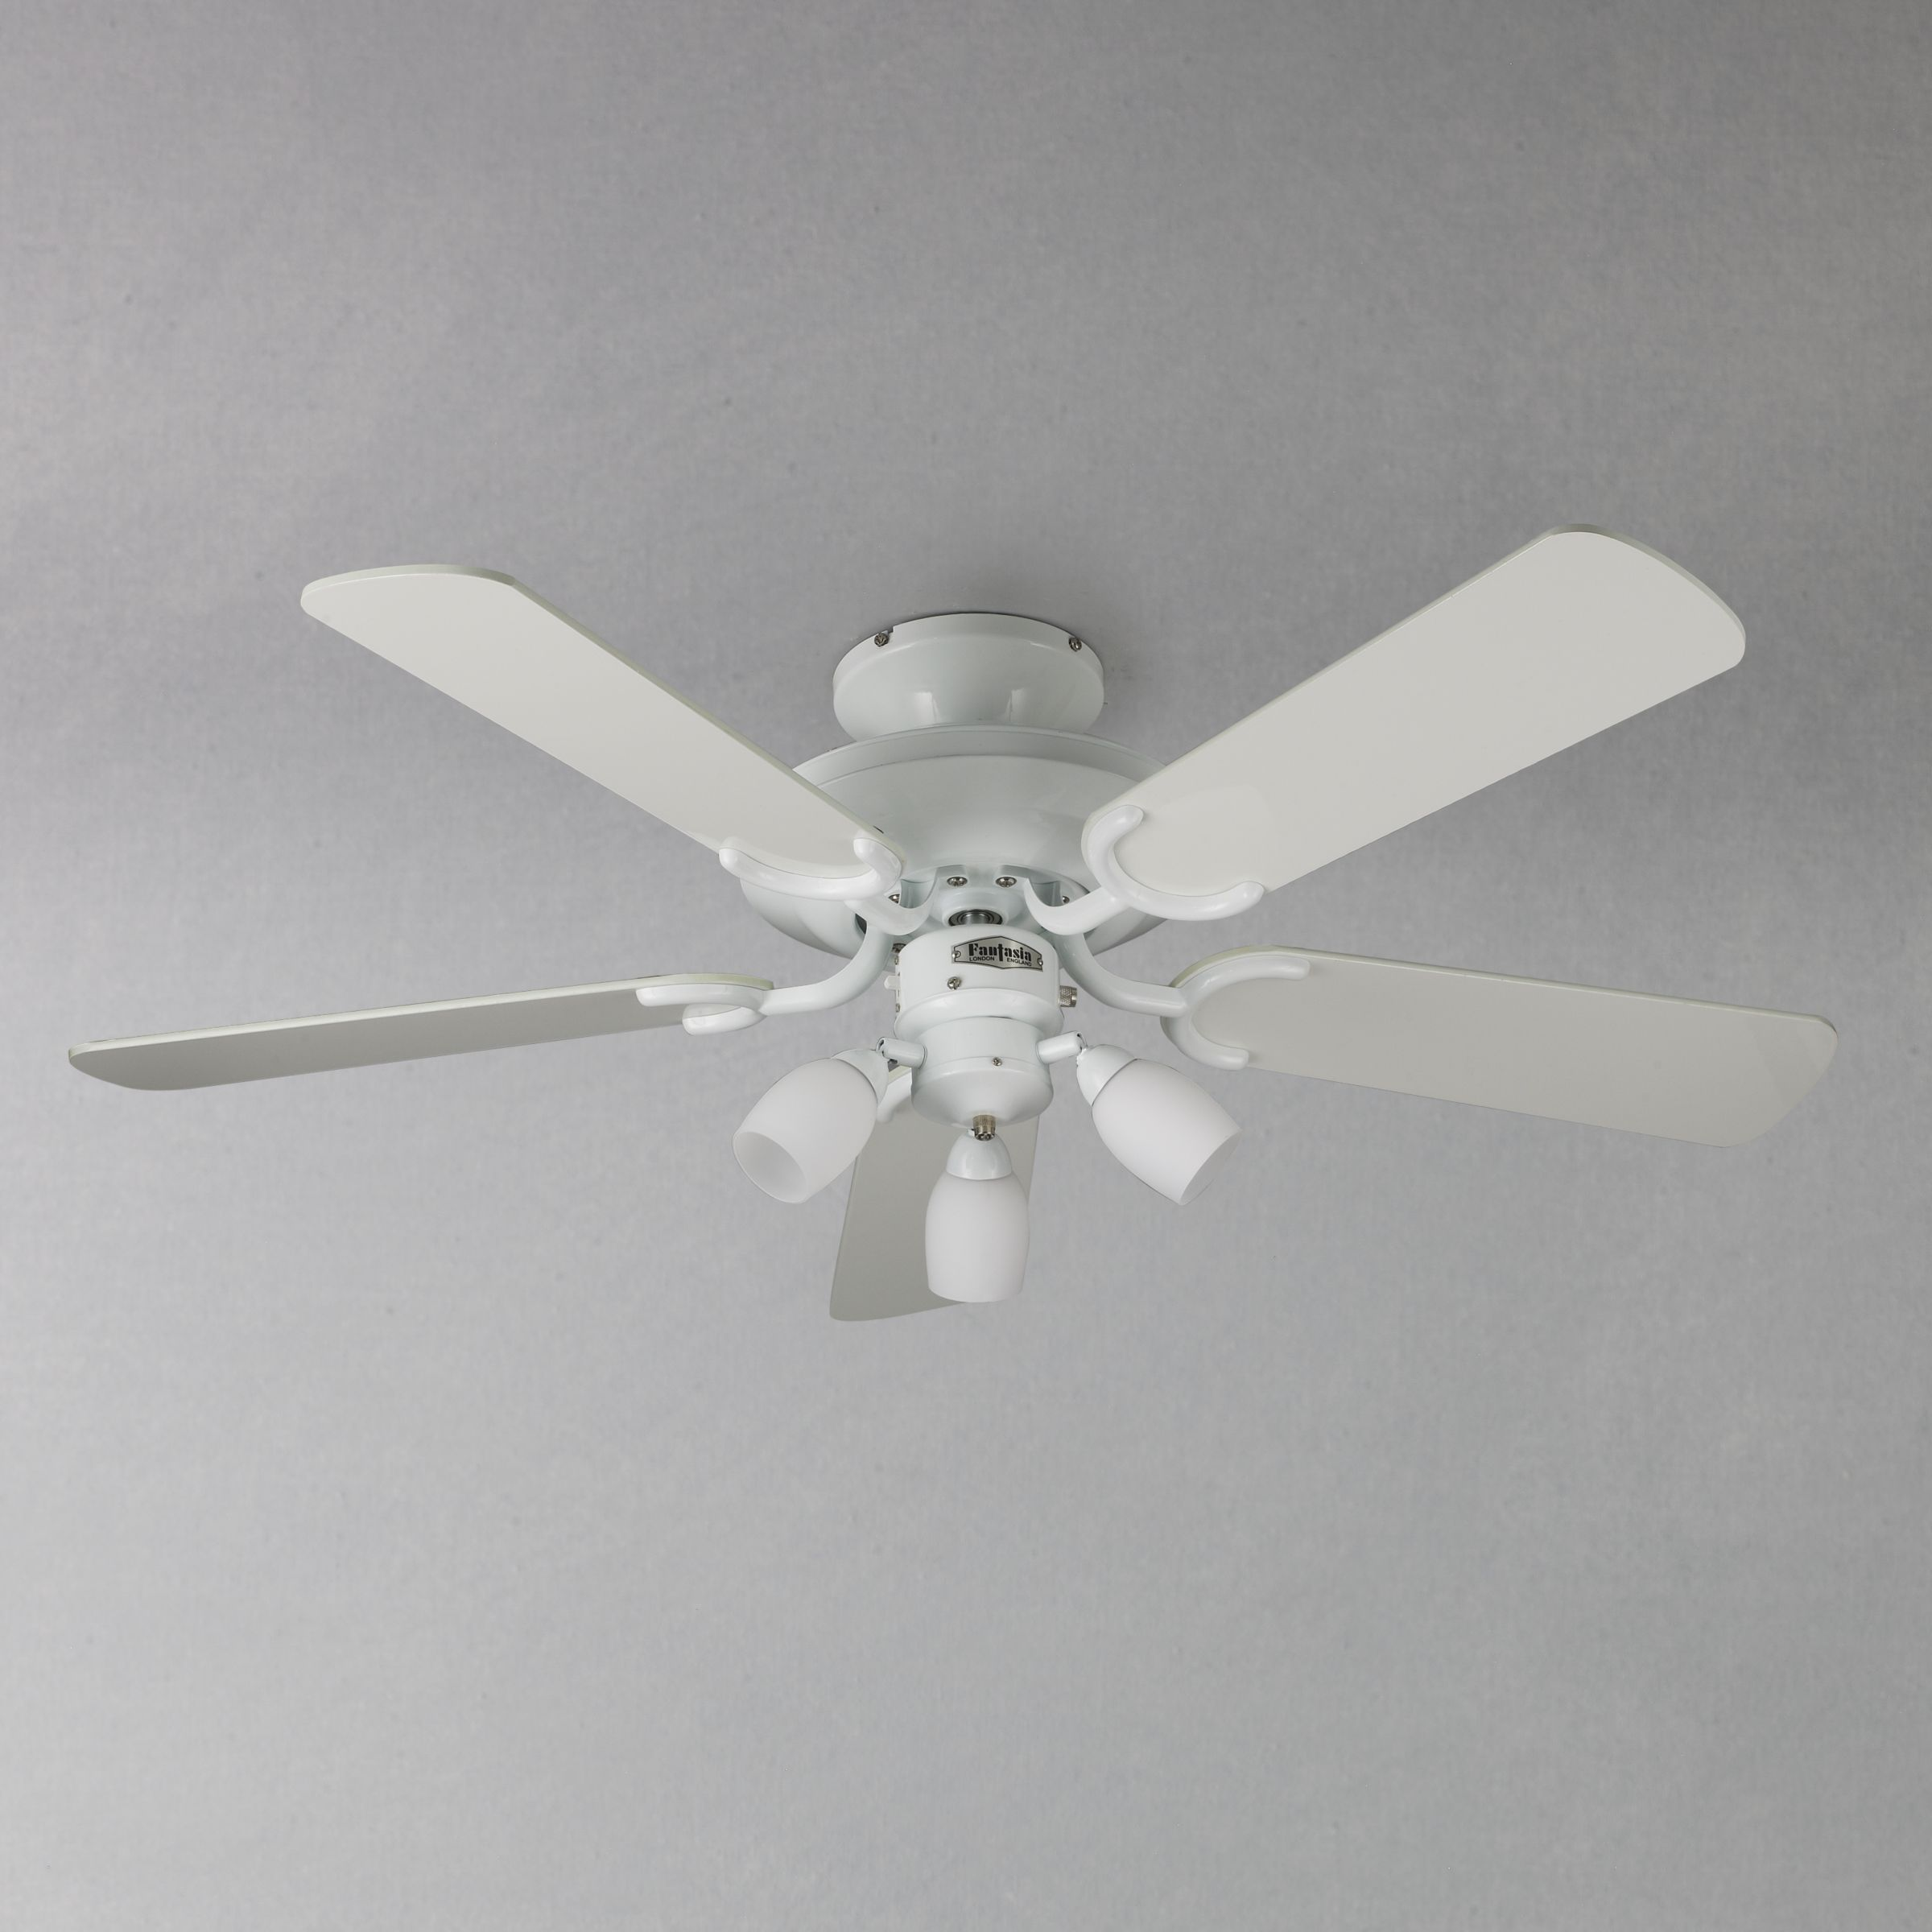 Buy Fantasia Mayfair Ceiling Fan and Light, White Online at johnlewis ...